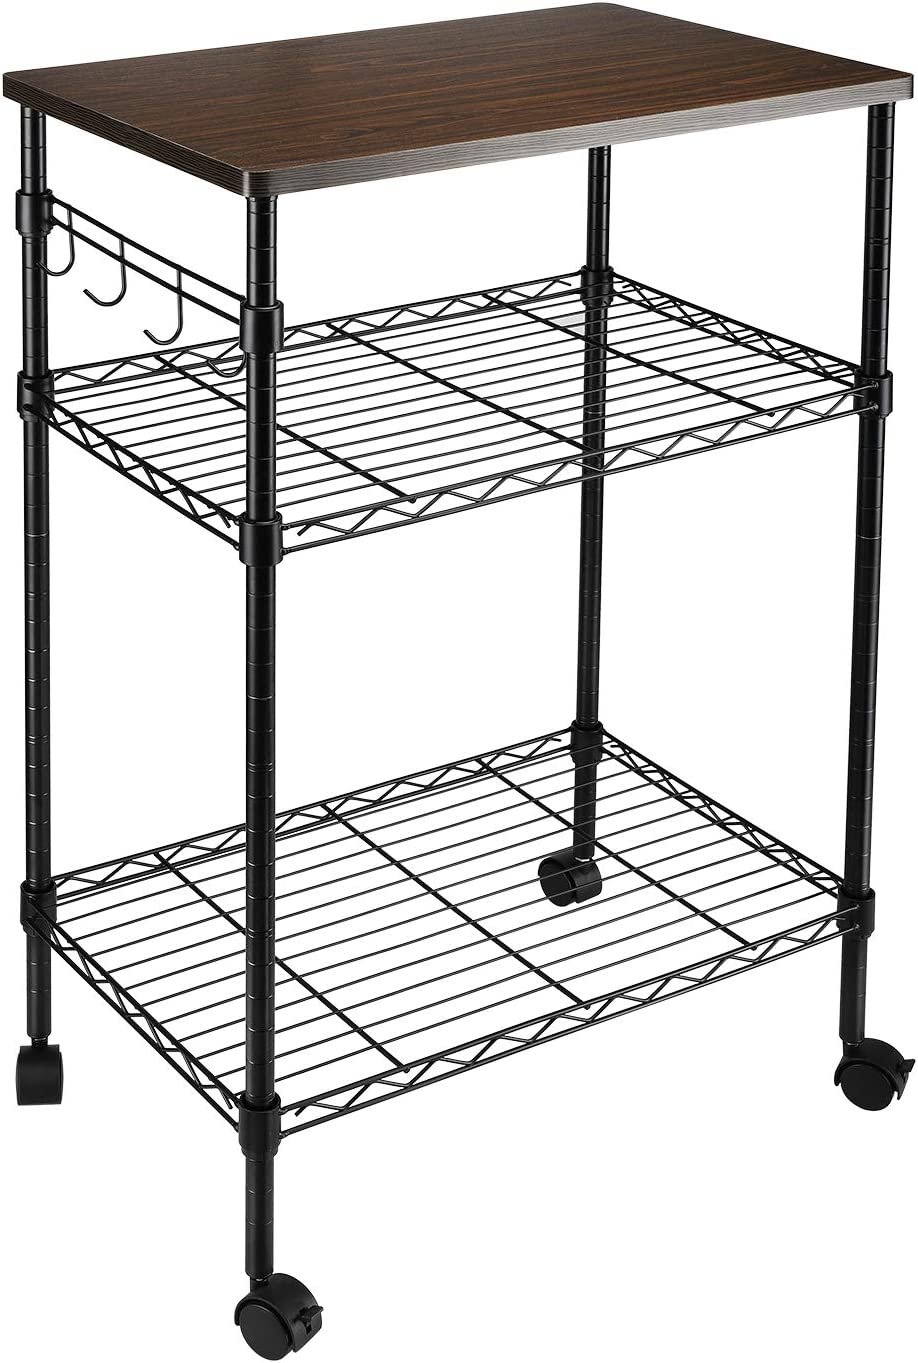 alvorog 3-Tier Rolling Kitchen Cart, Microwave Storage Rack Utility Service Cart with Adjustable Mesh Shelves Bakers Rack for Living Room, Bedroom and Office